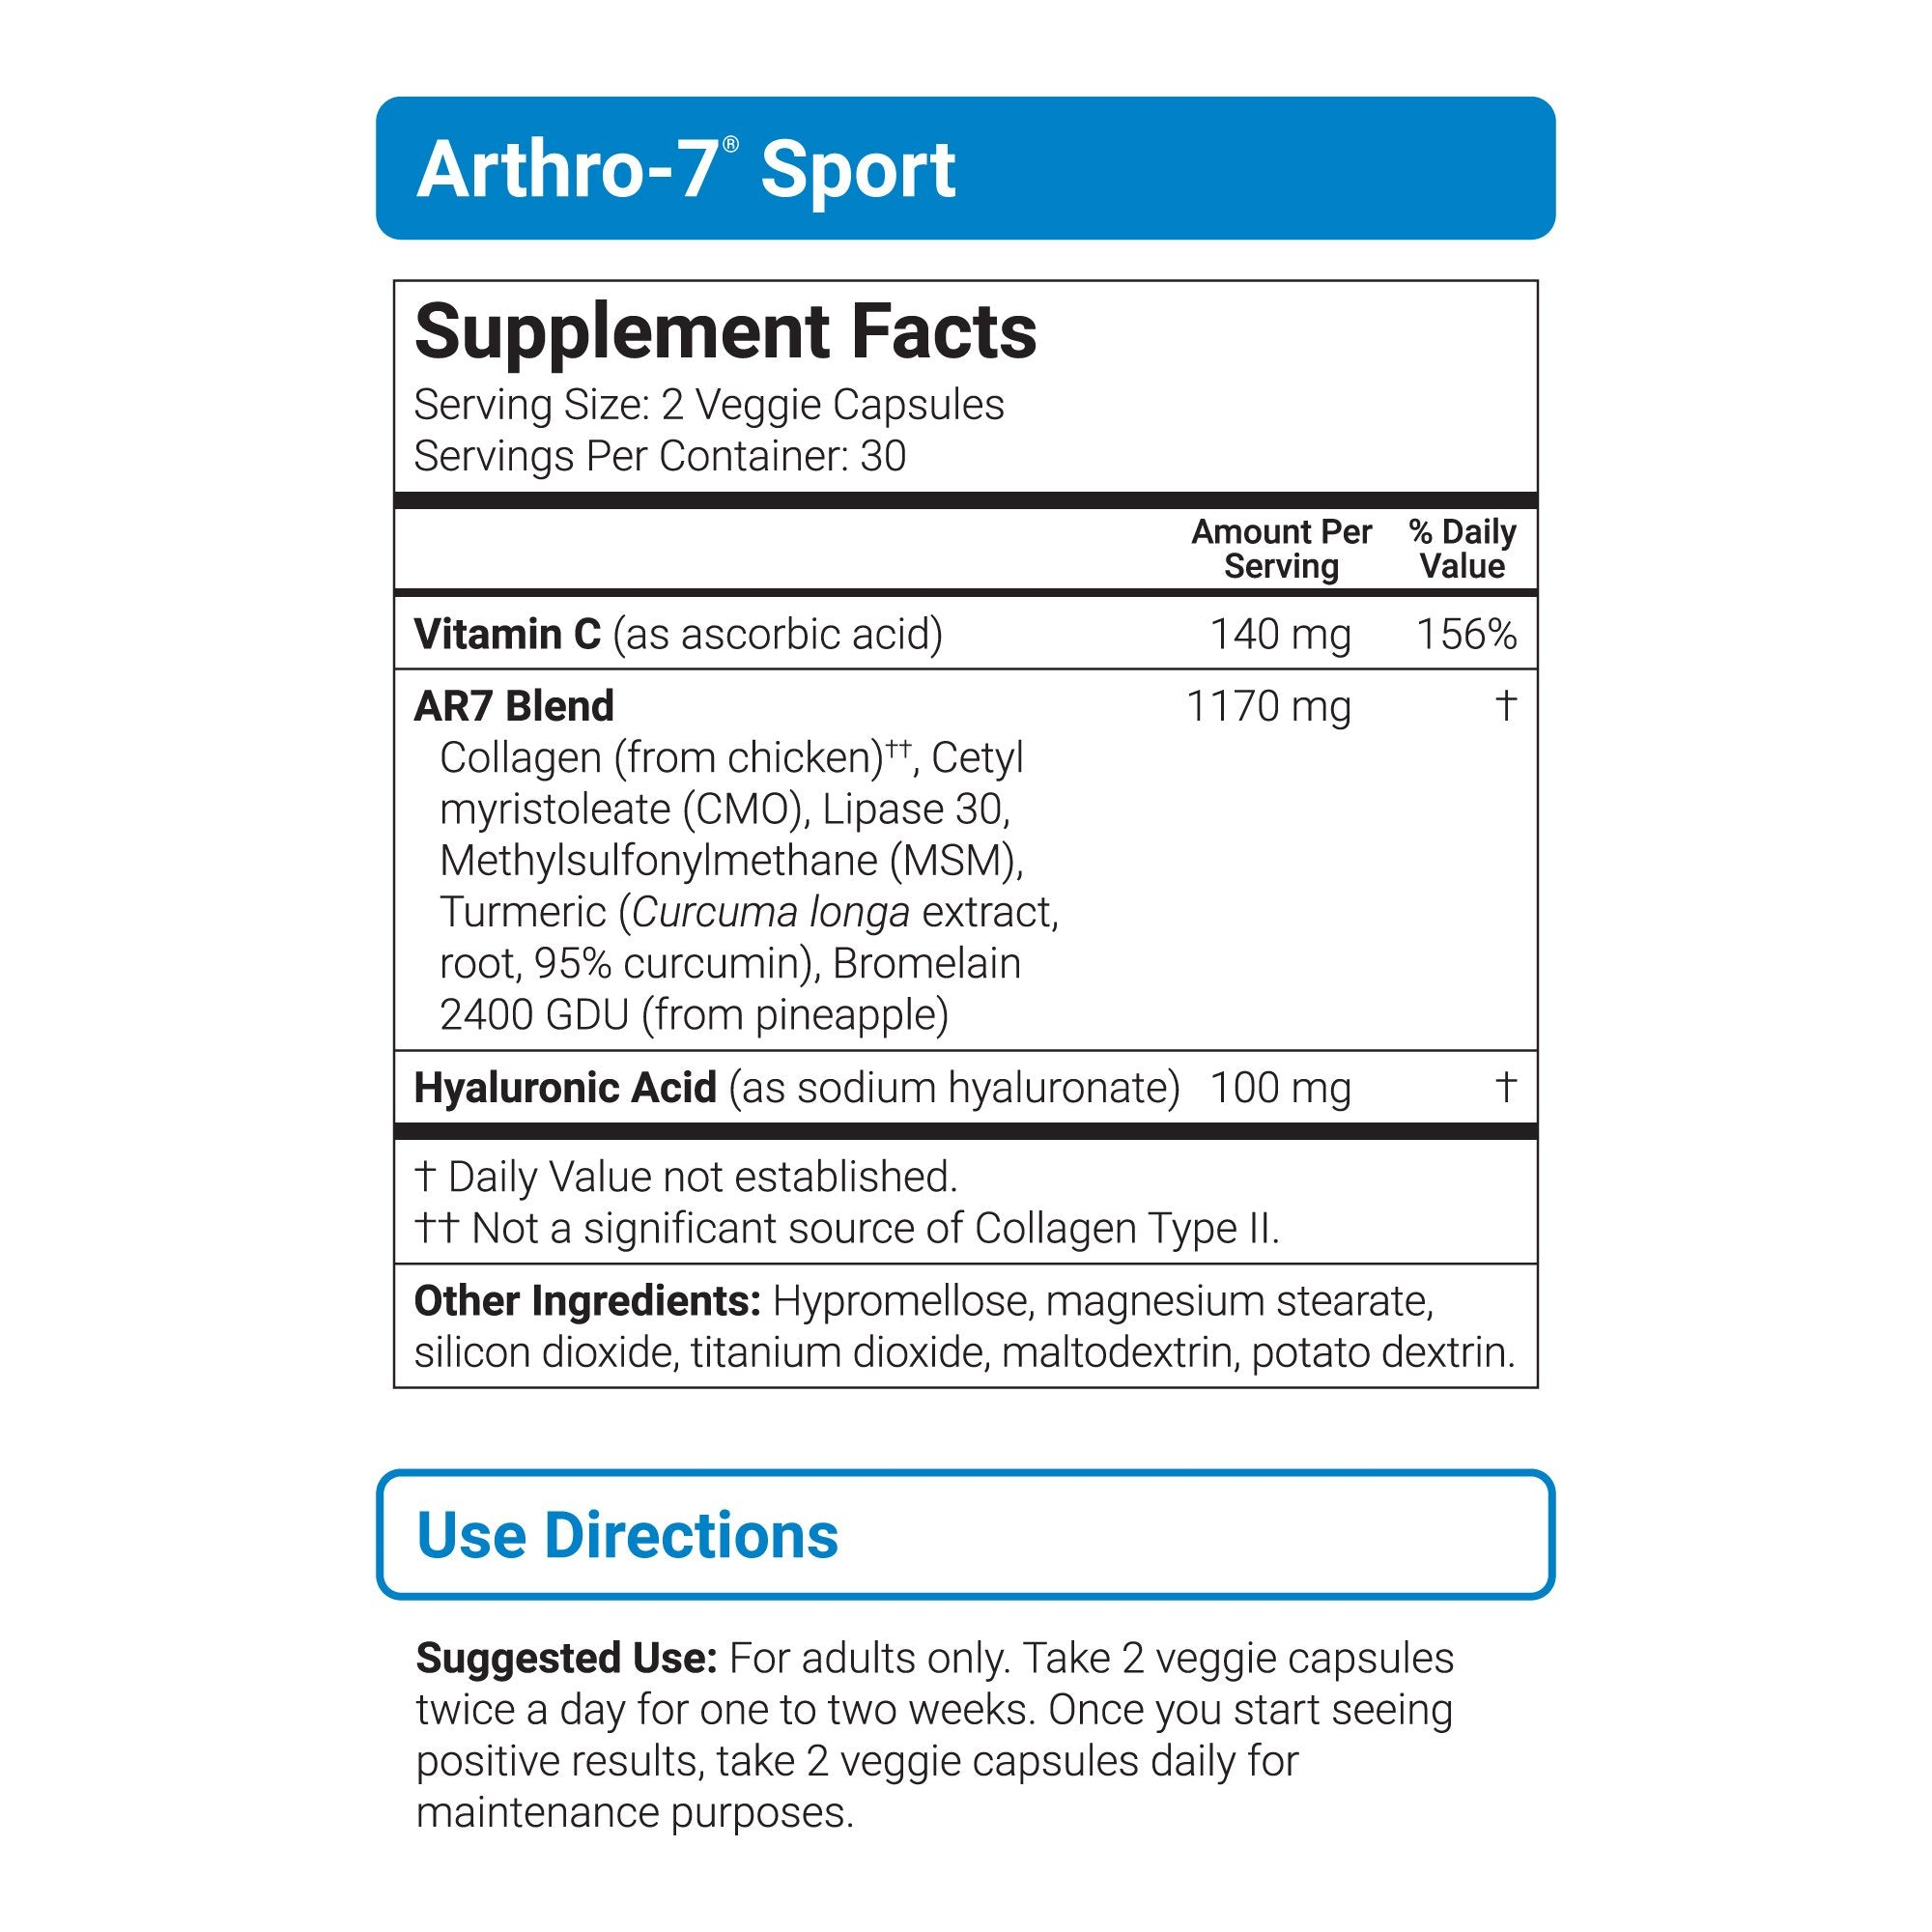 Arthro-7 Sport sup facts